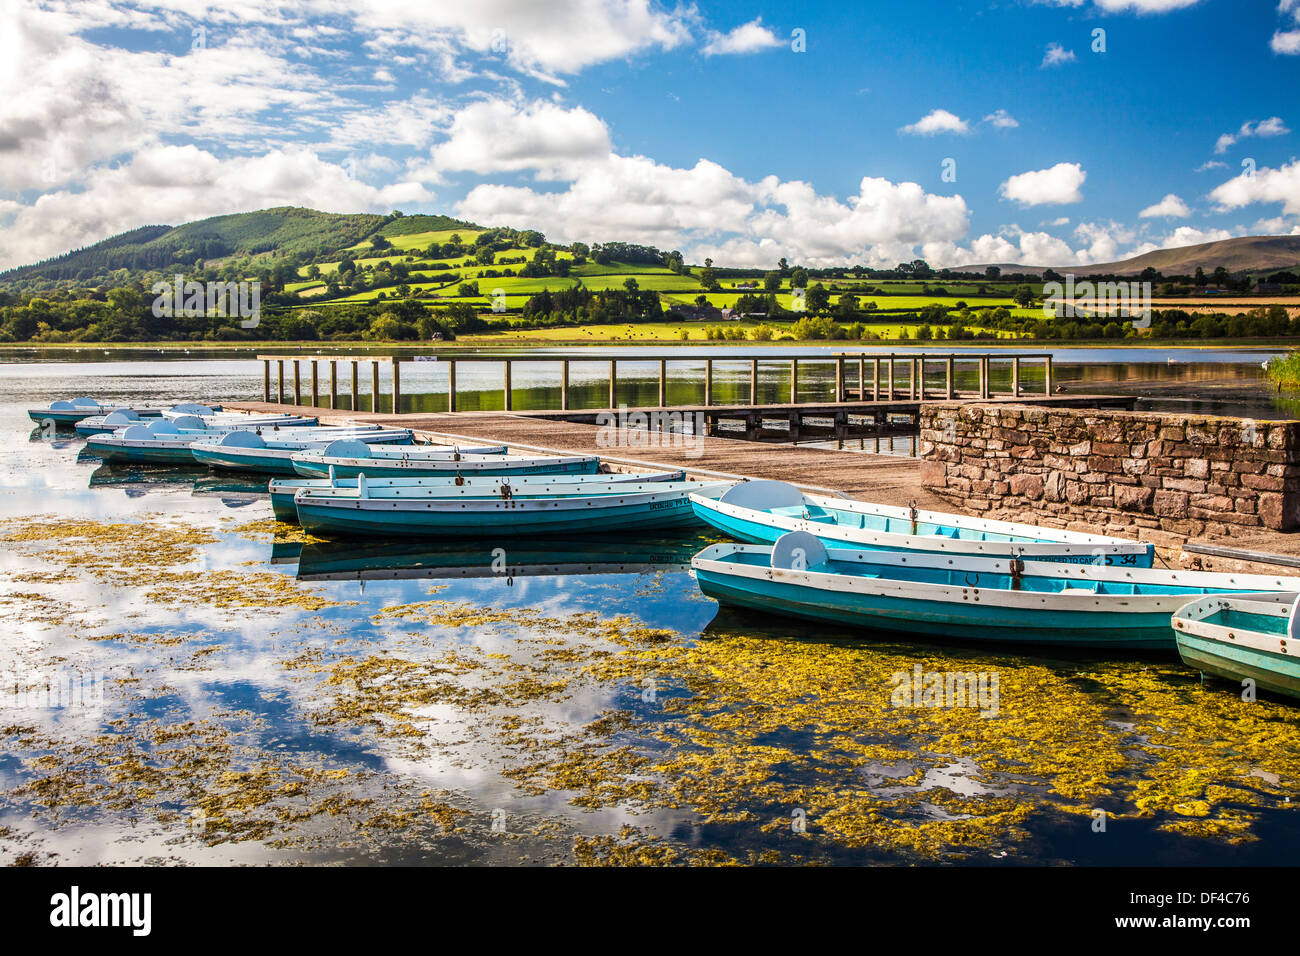 Rowing boats moored at Llangors Lake in the Brecon Beacons National Park, Wales. - Stock Image